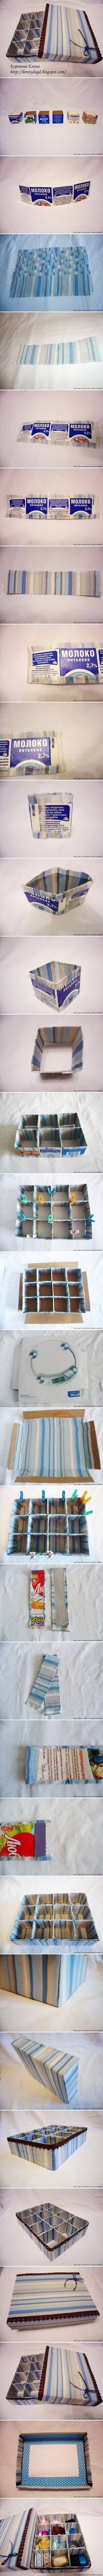 DIY Organizer with Divider